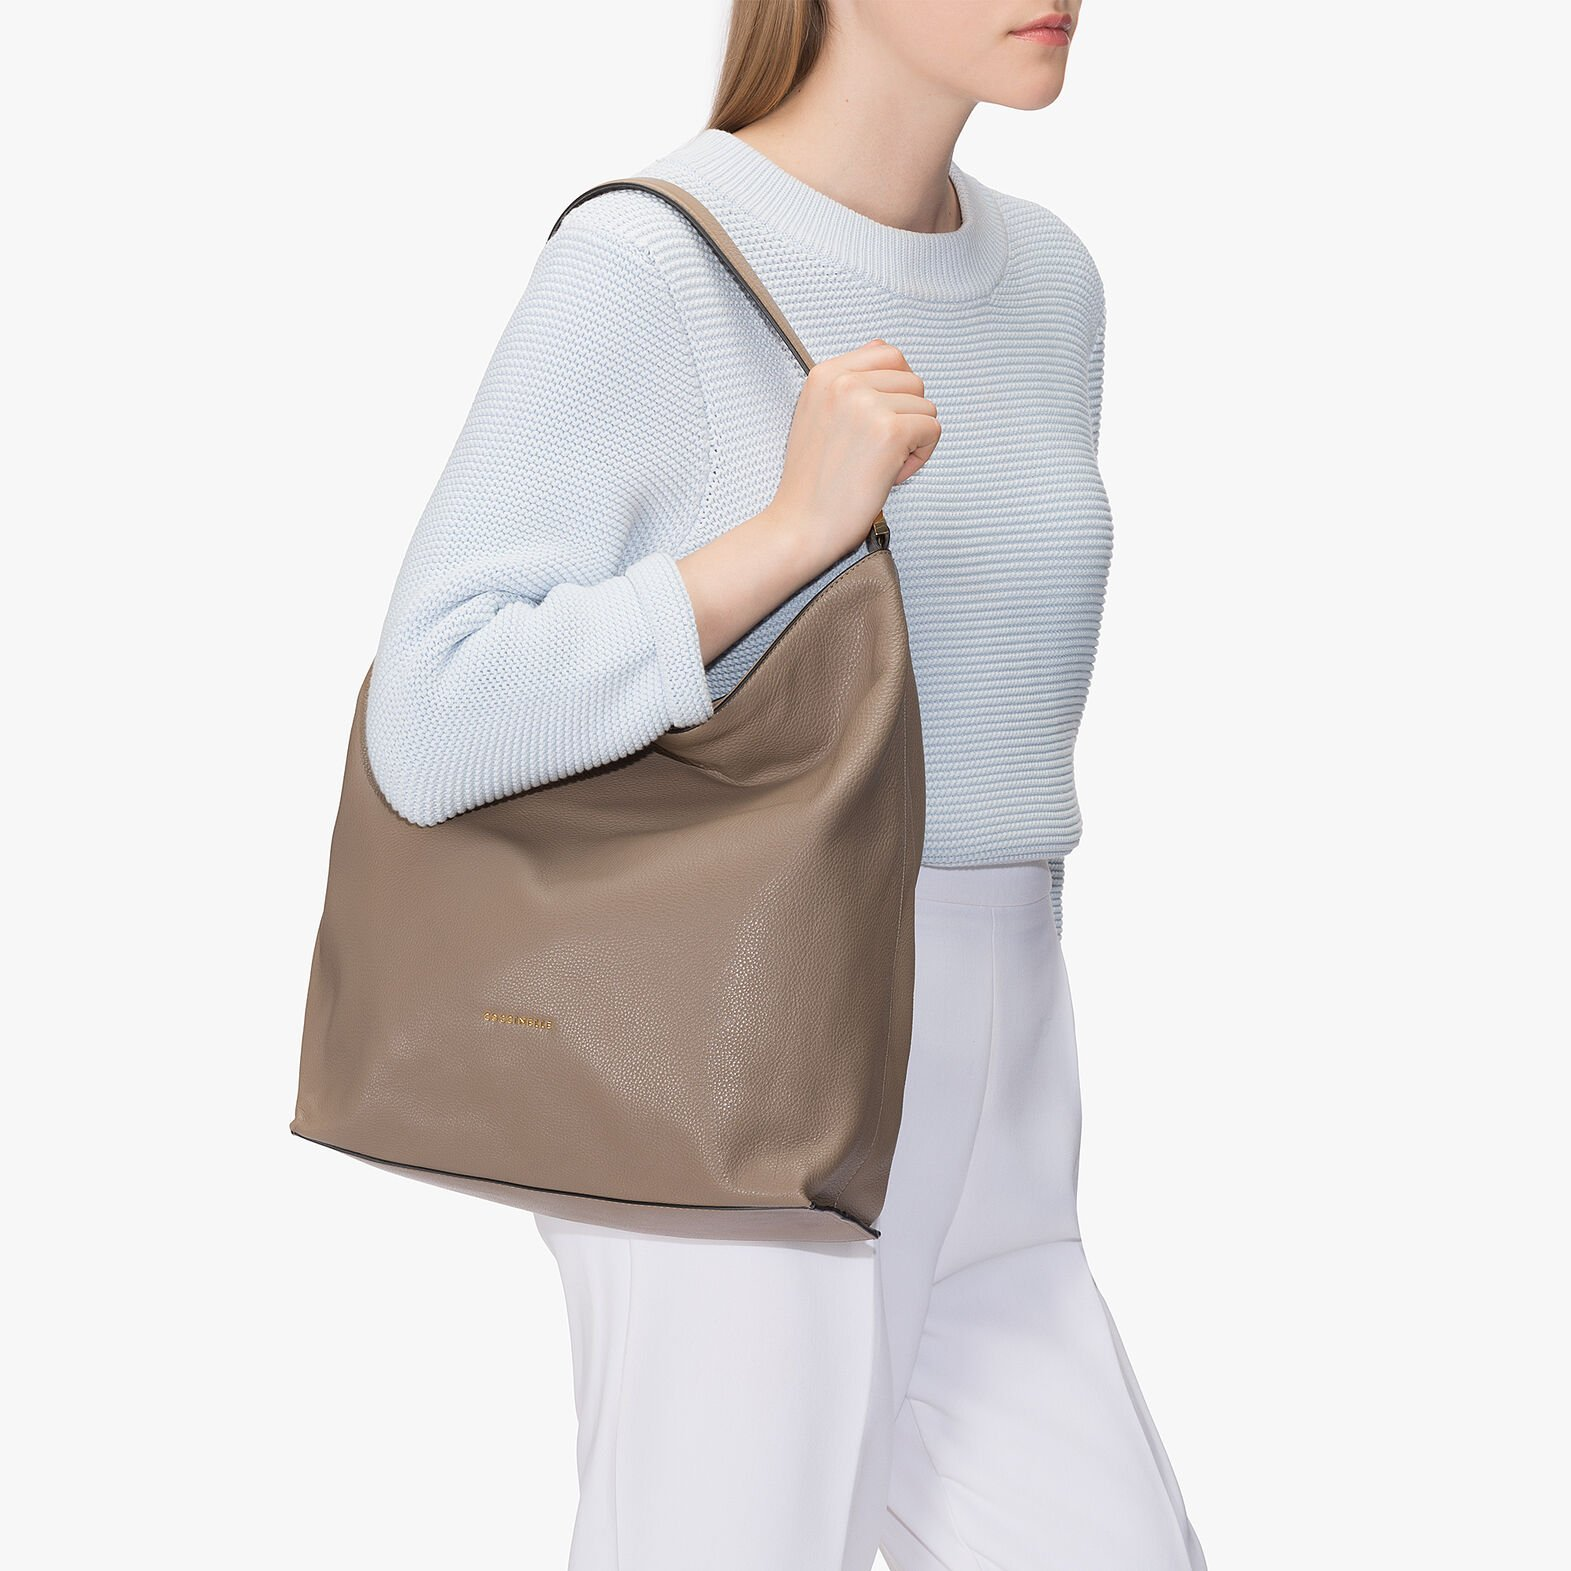 Coccinelle Arlettis leather hobo bag